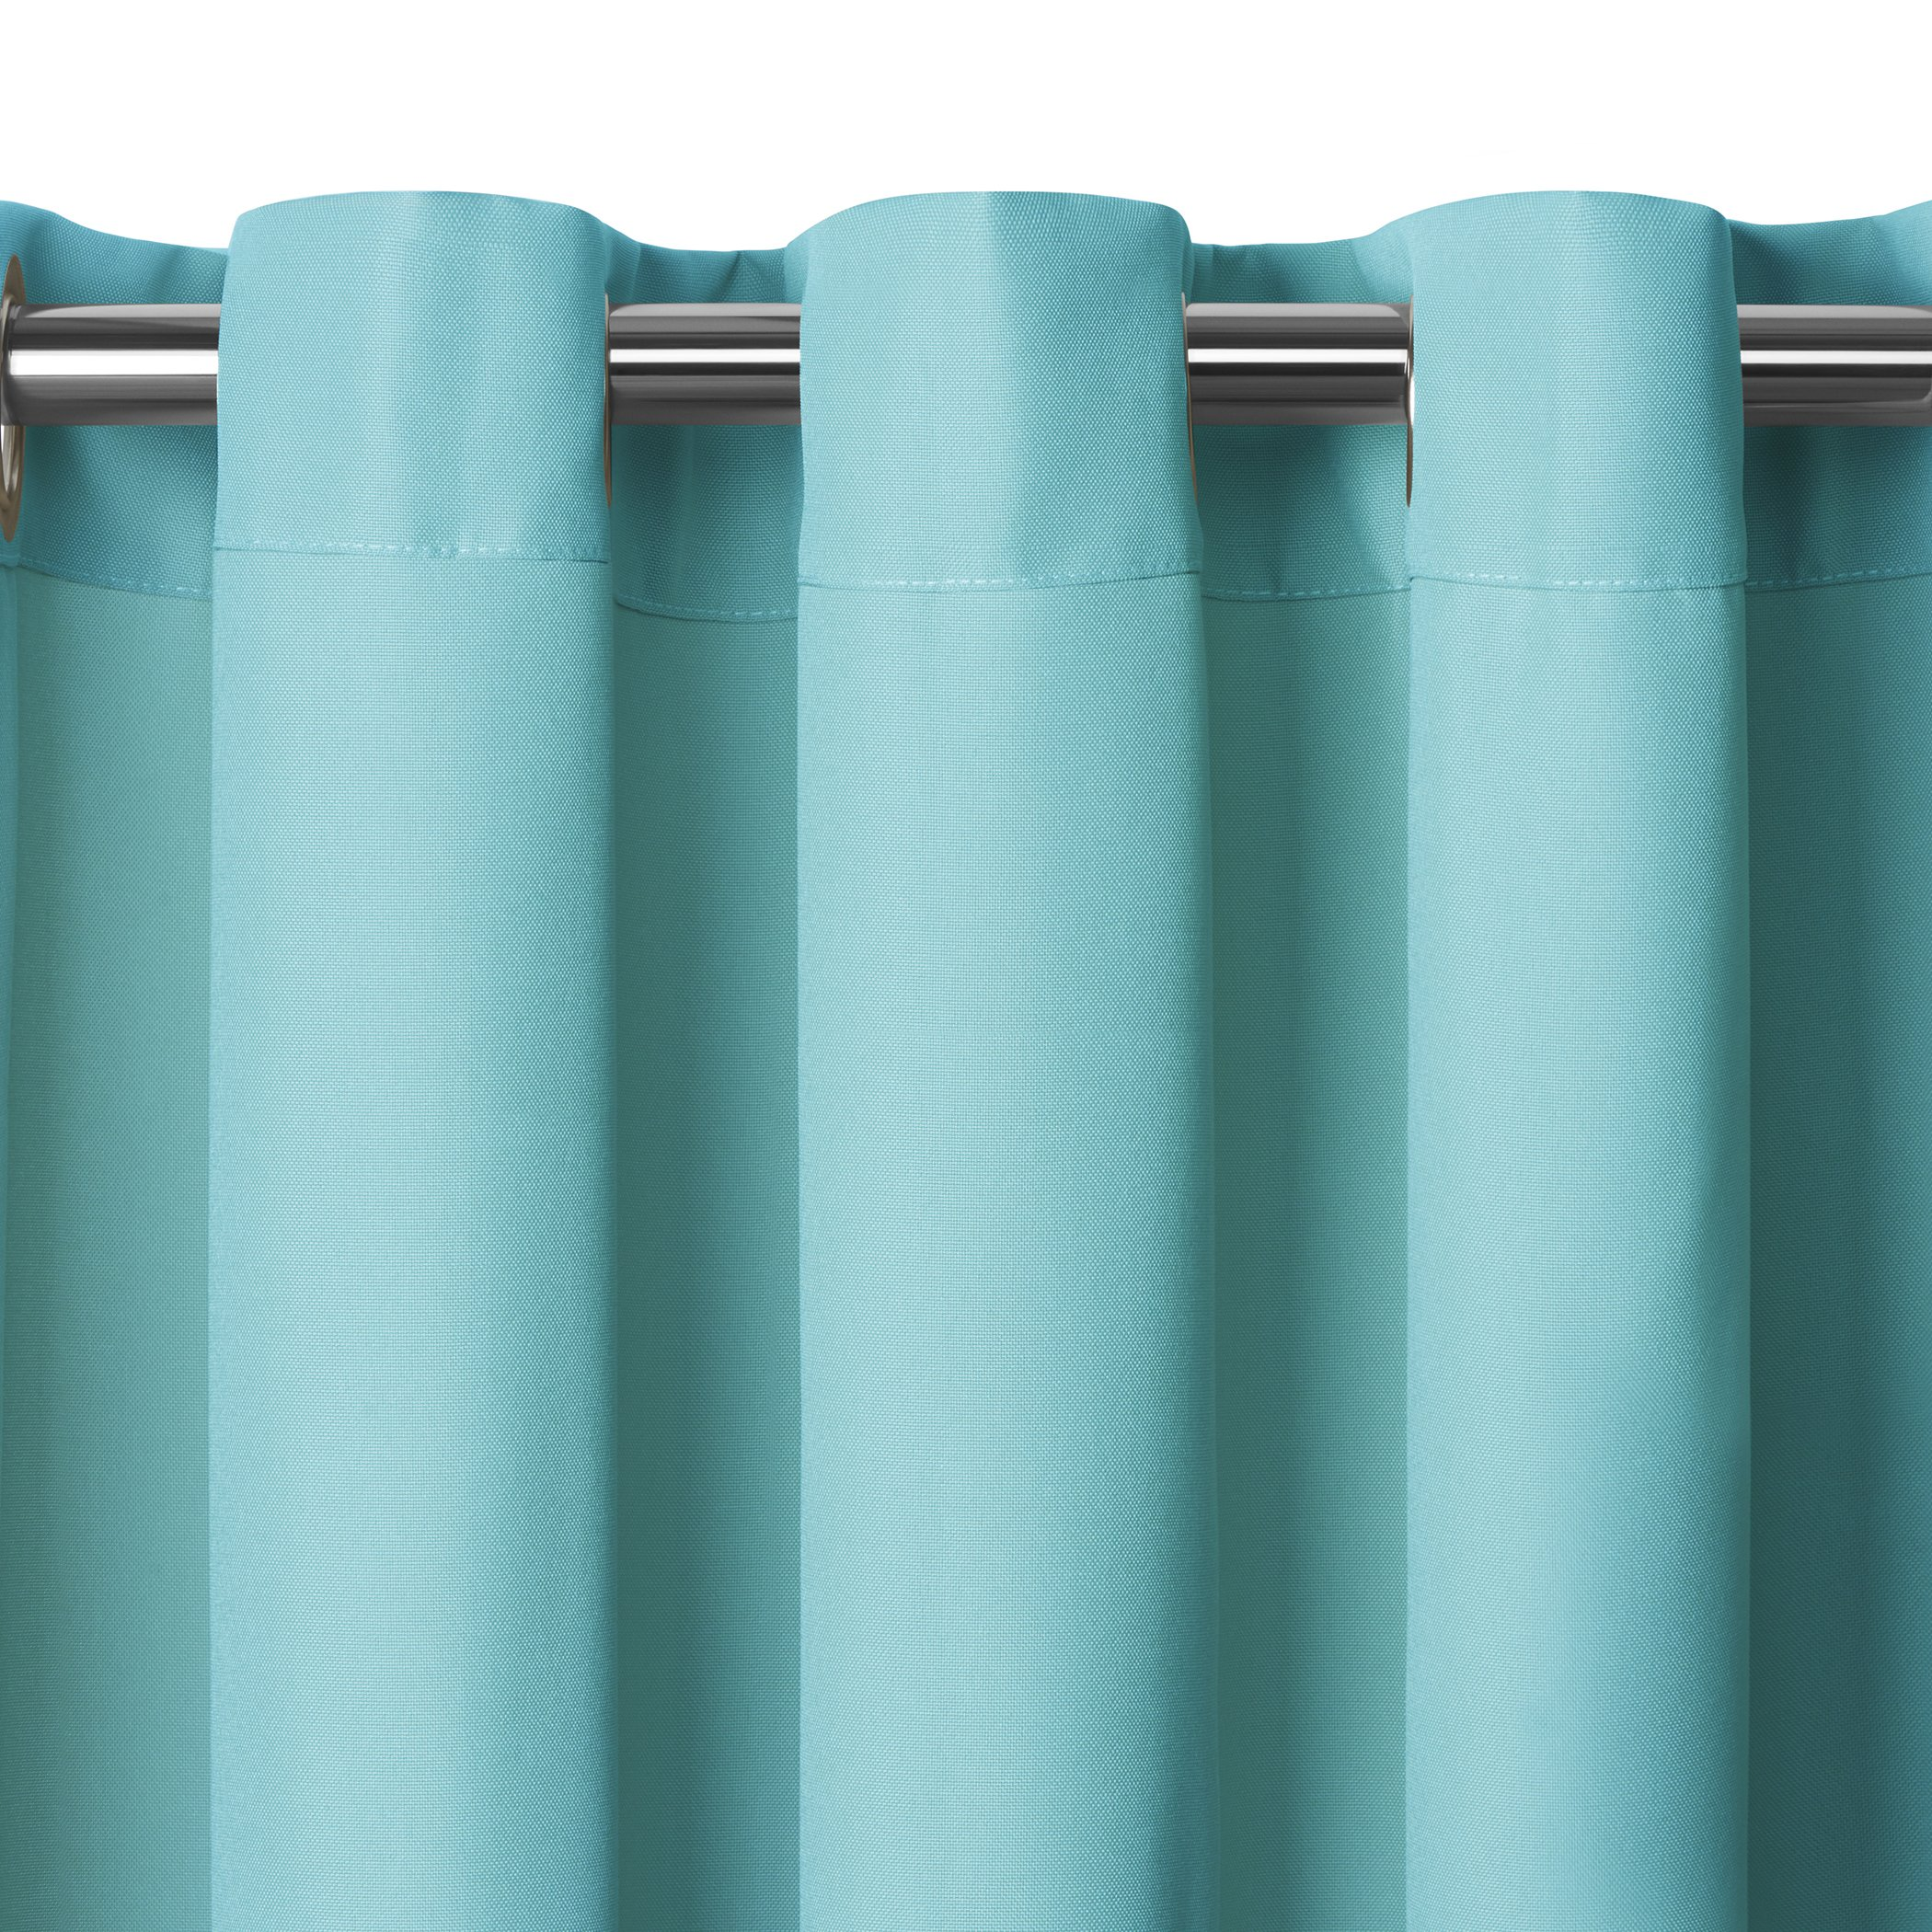 Elrene Home Fashions Connor Indoor/Outdoor Solid Grommet Panel Window Curtain 52'' x 108'' (1), Turquoise by Elrene (Image #8)